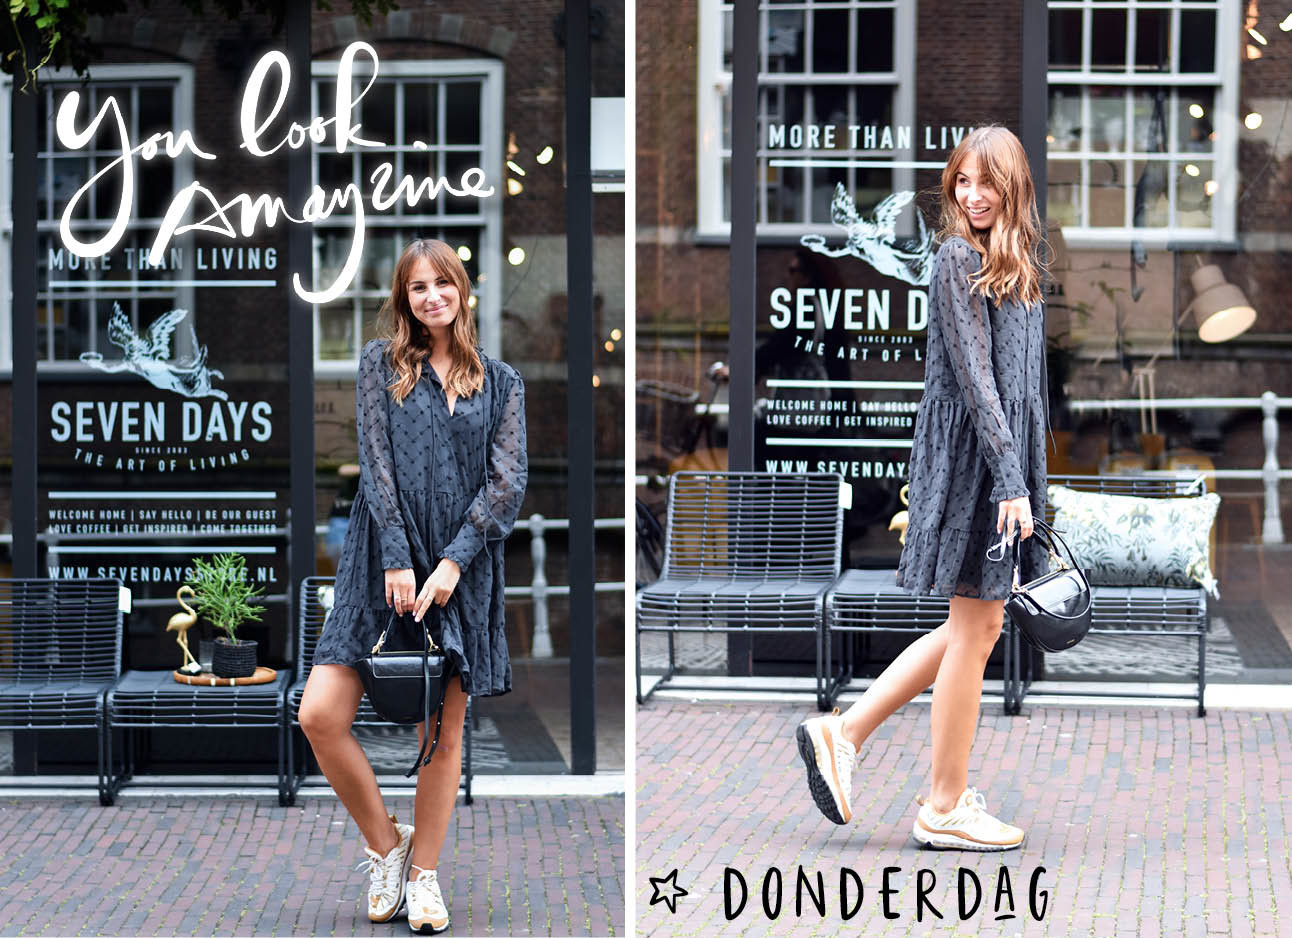 lilian brijl in delft, look of the day, zwarte jurk, sneakers